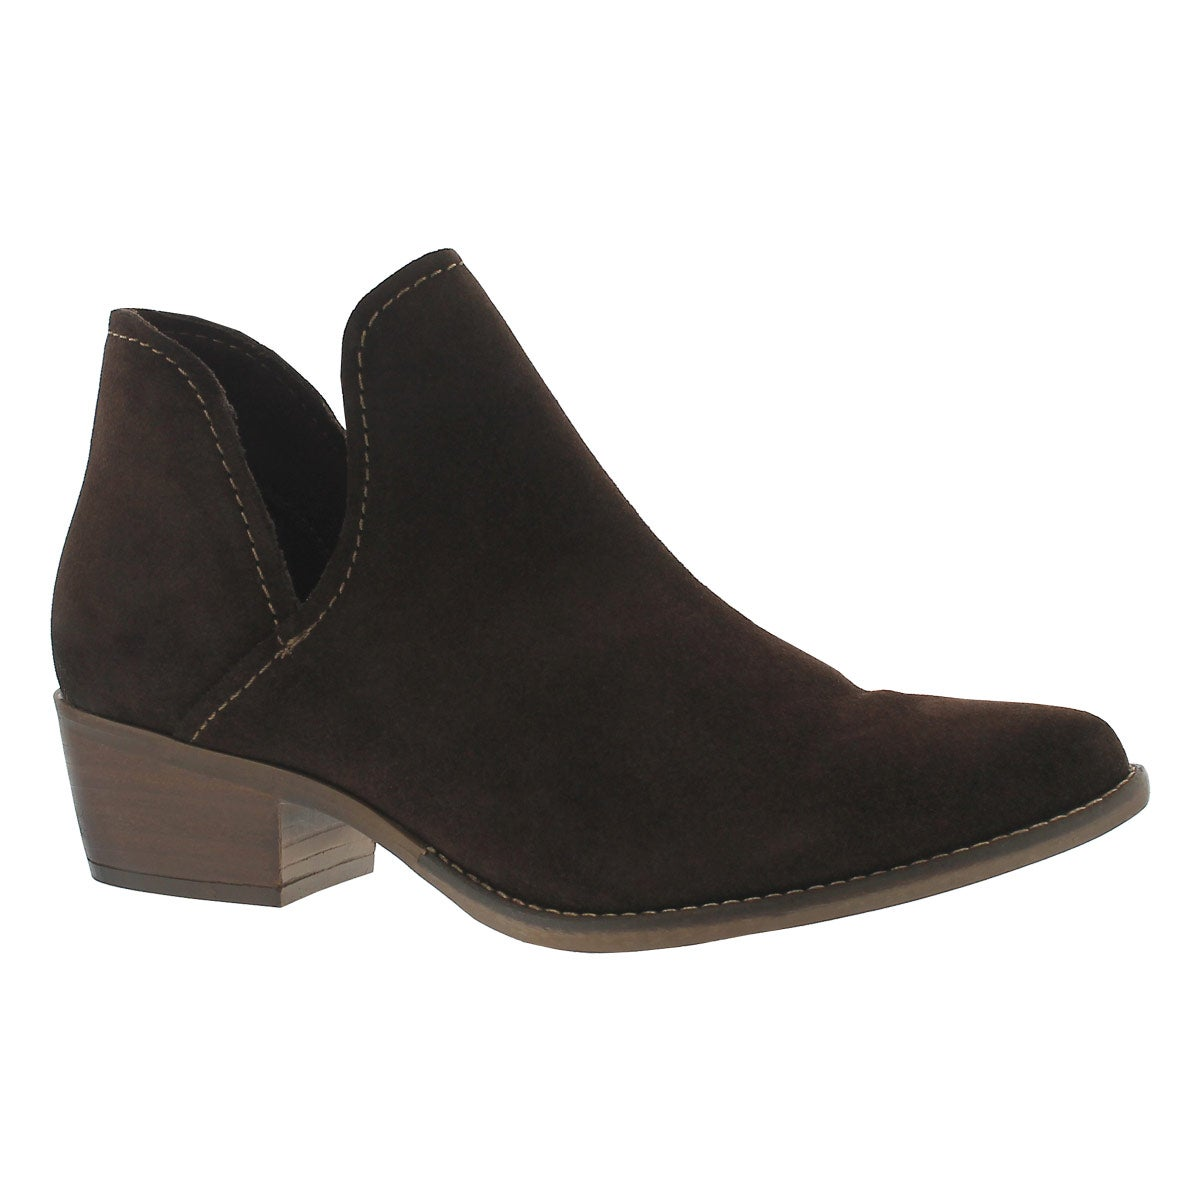 Women's AUSTIN brown slip on ankle boots